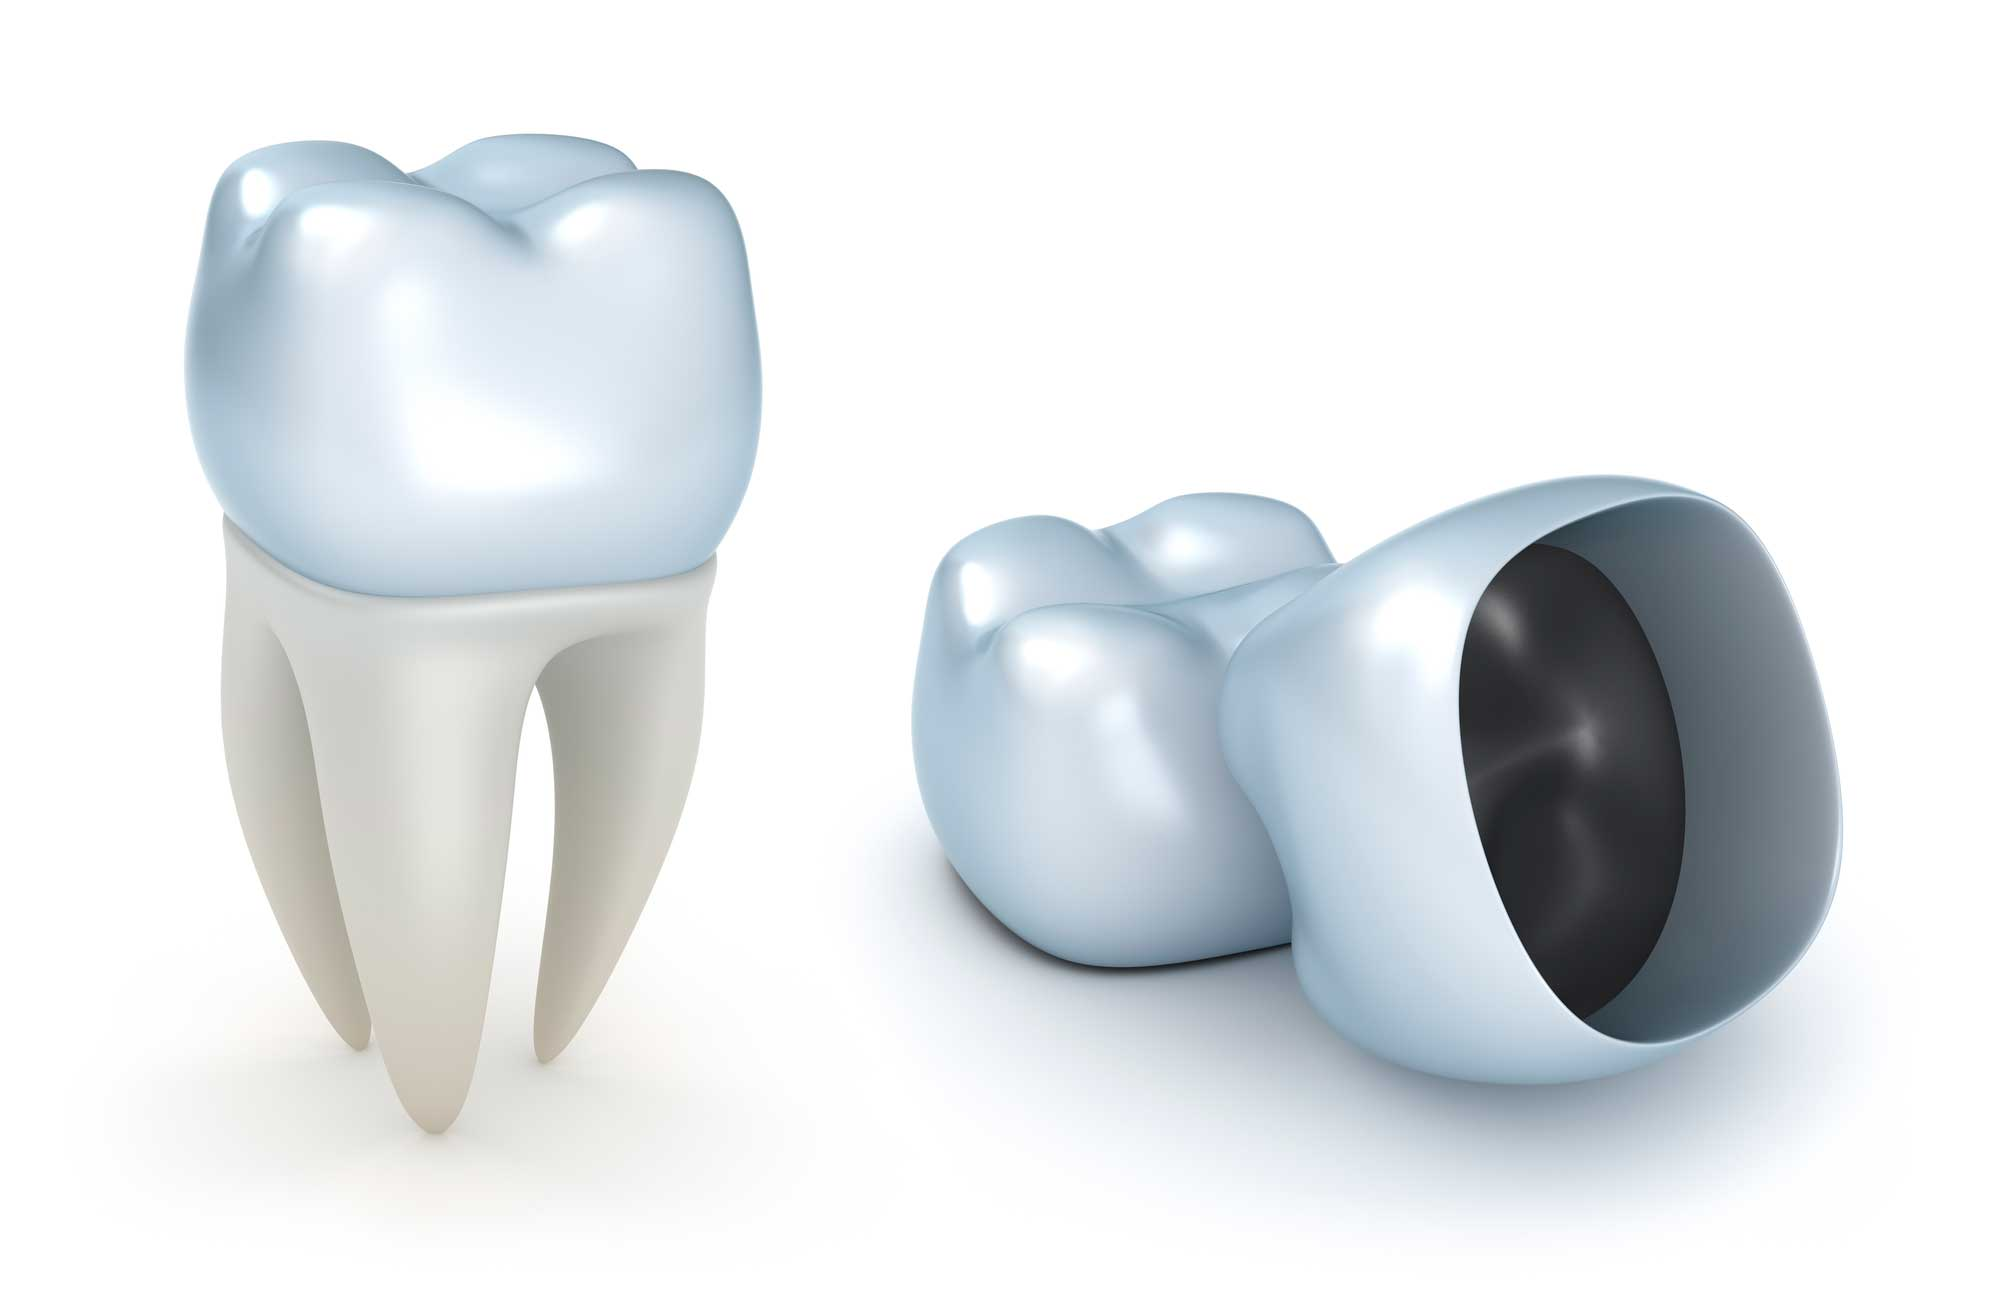 What are dental crowns and why should I get one?